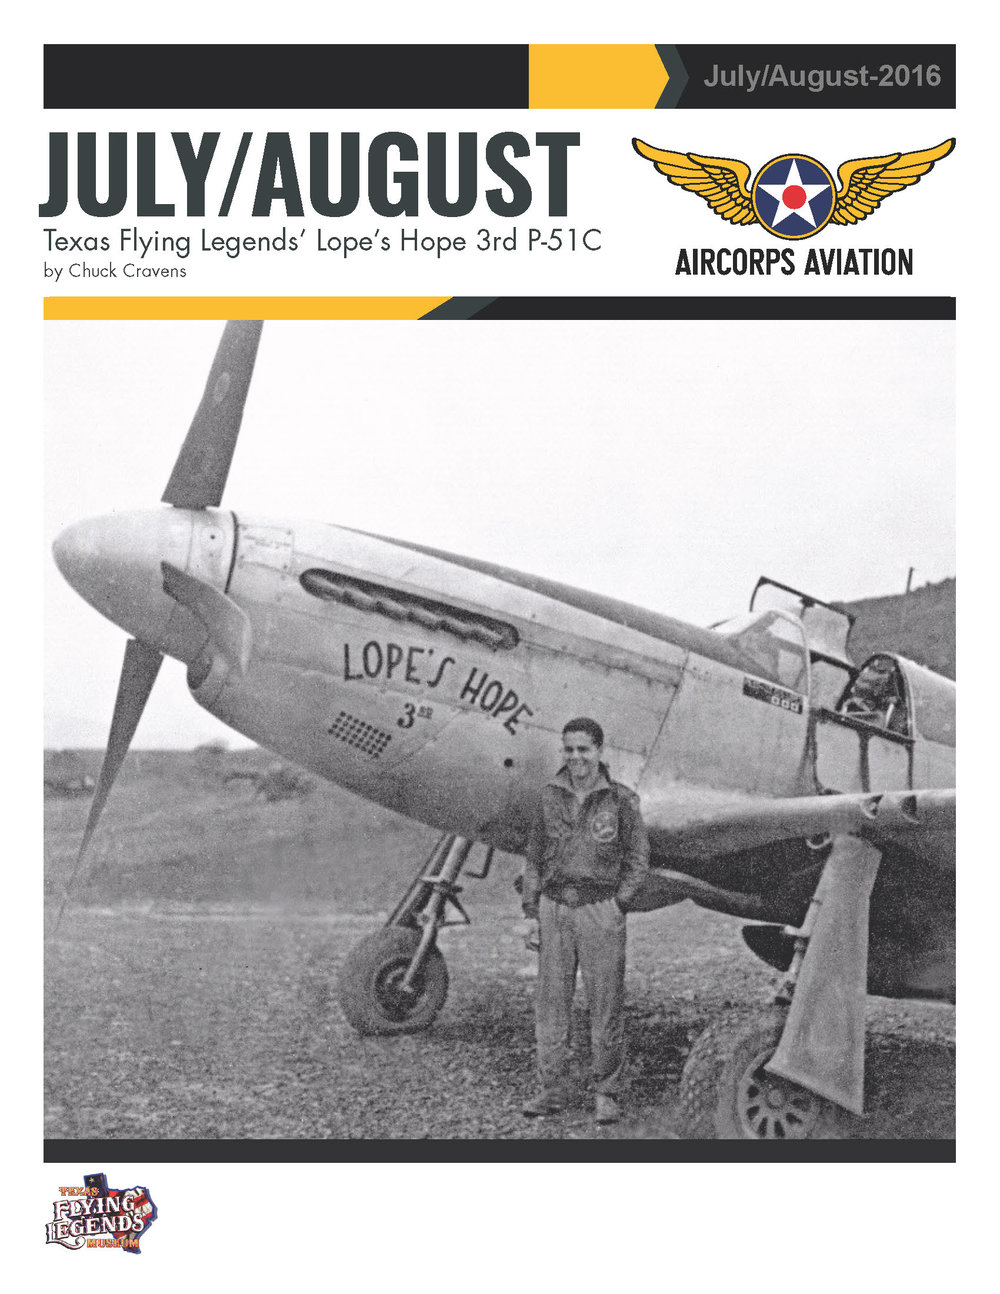 June/July Texas Flying Legend's Lope's Hope 1